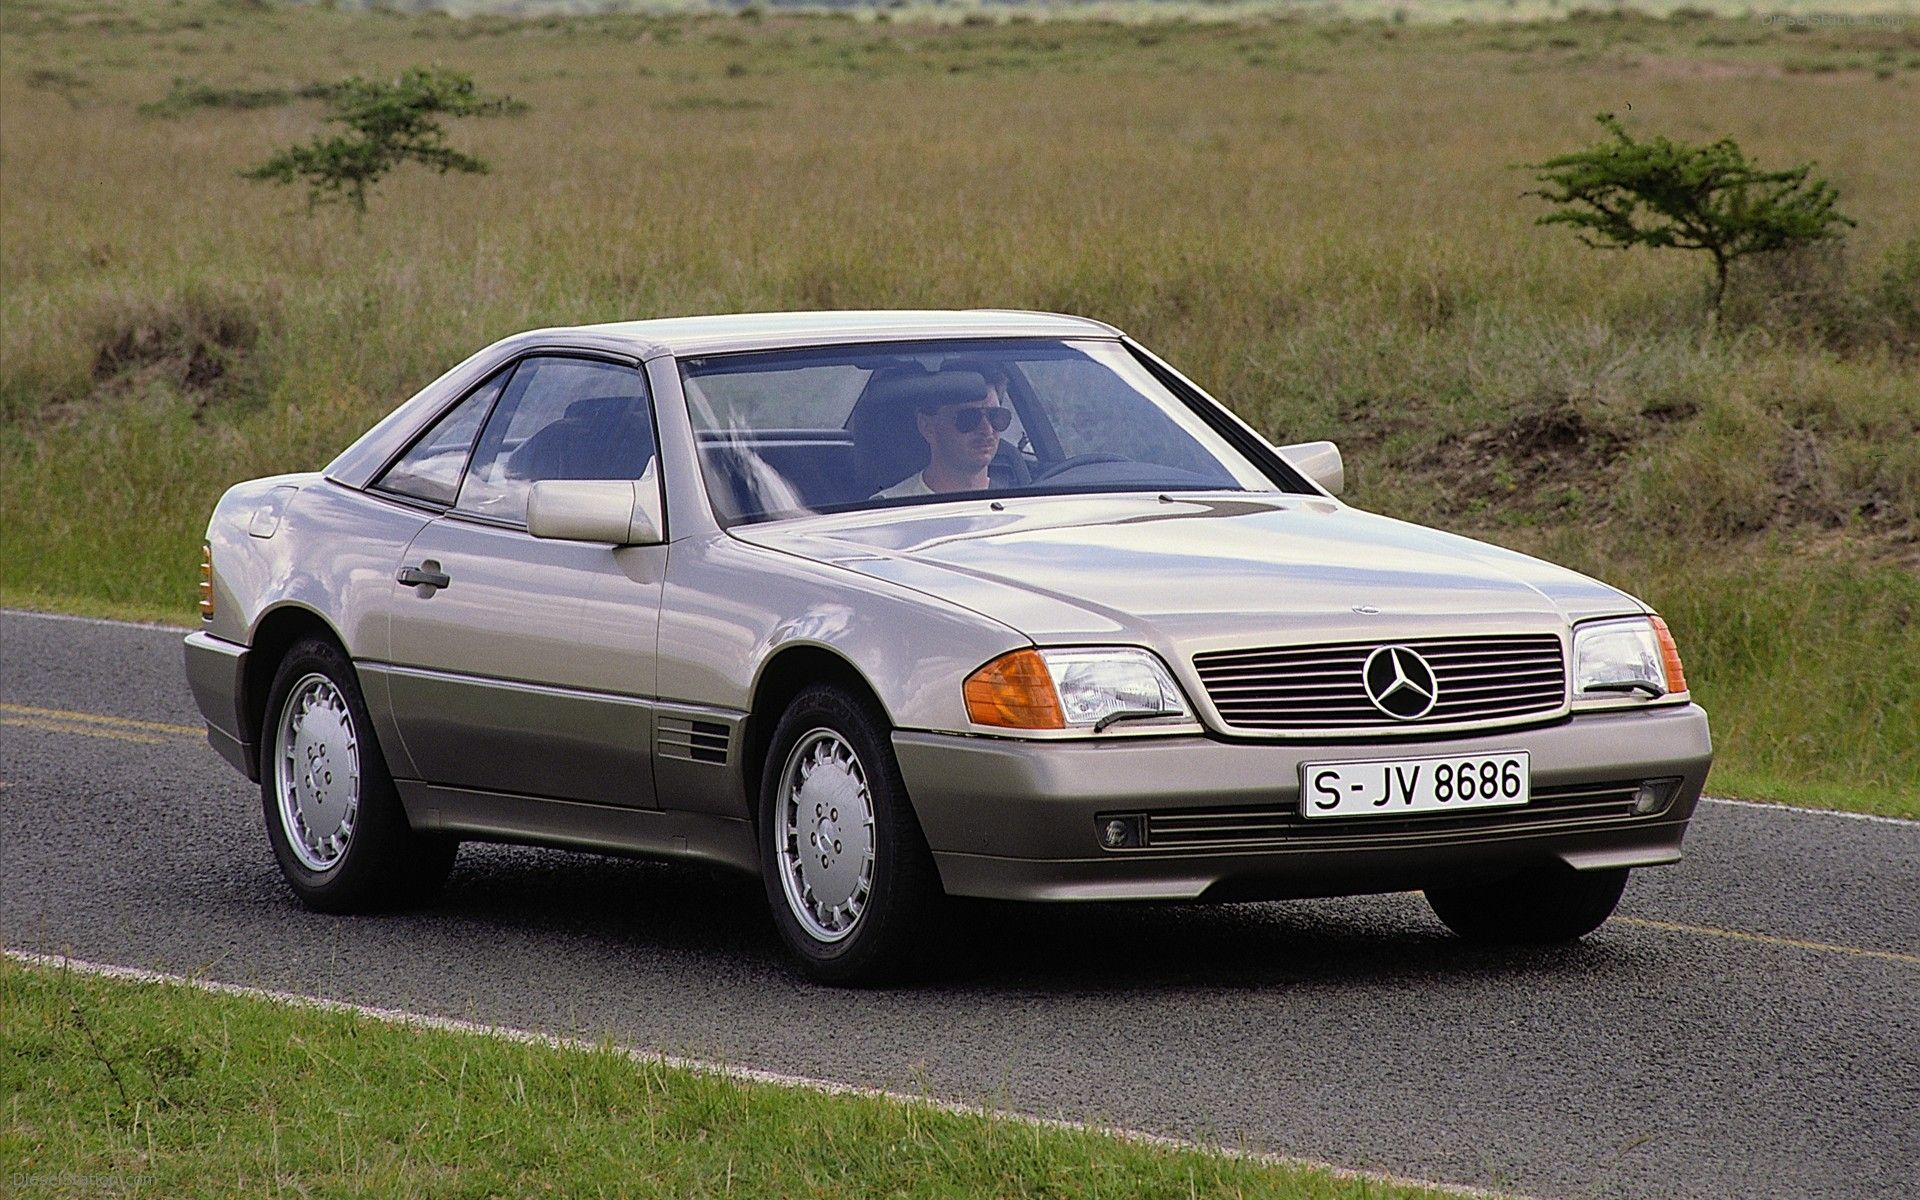 1989-2001 Mercedes-Benz SL R129 Widescreen Exotic Car Picture #13 of